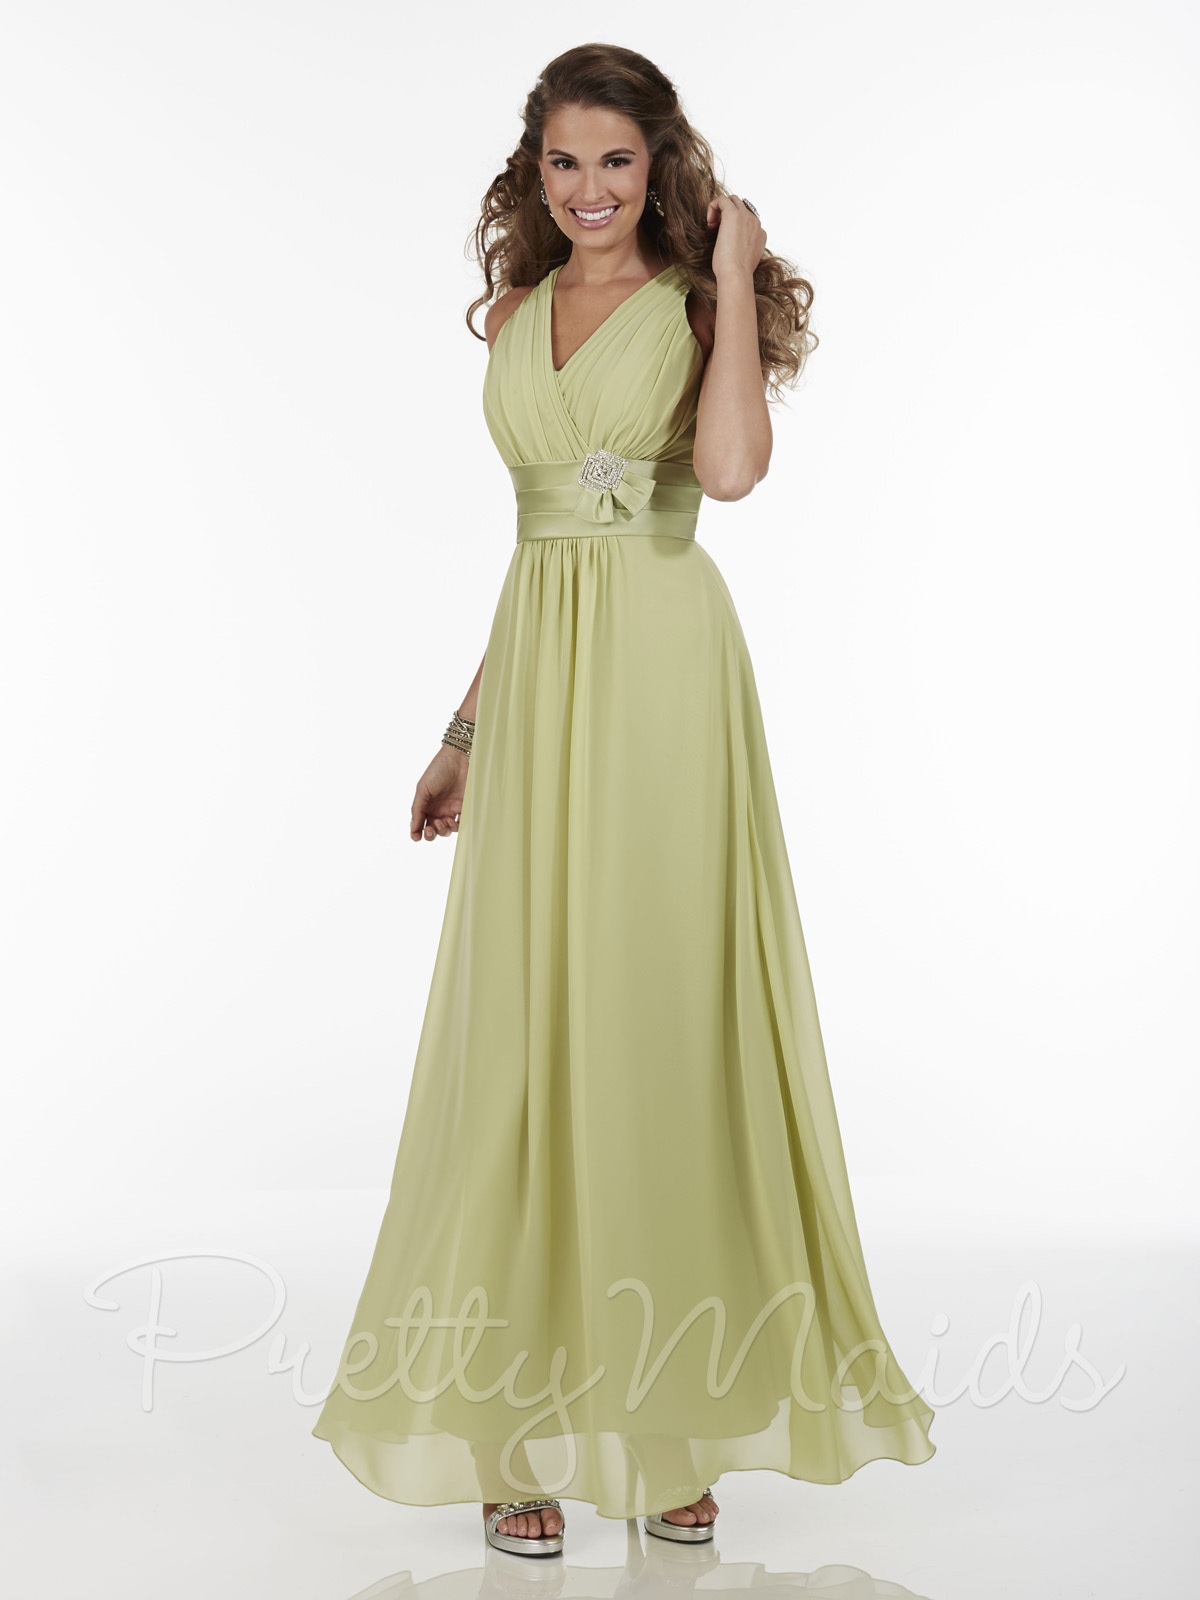 Pretty Maids Bridesmaid Dresses - Flower Girl Dresses